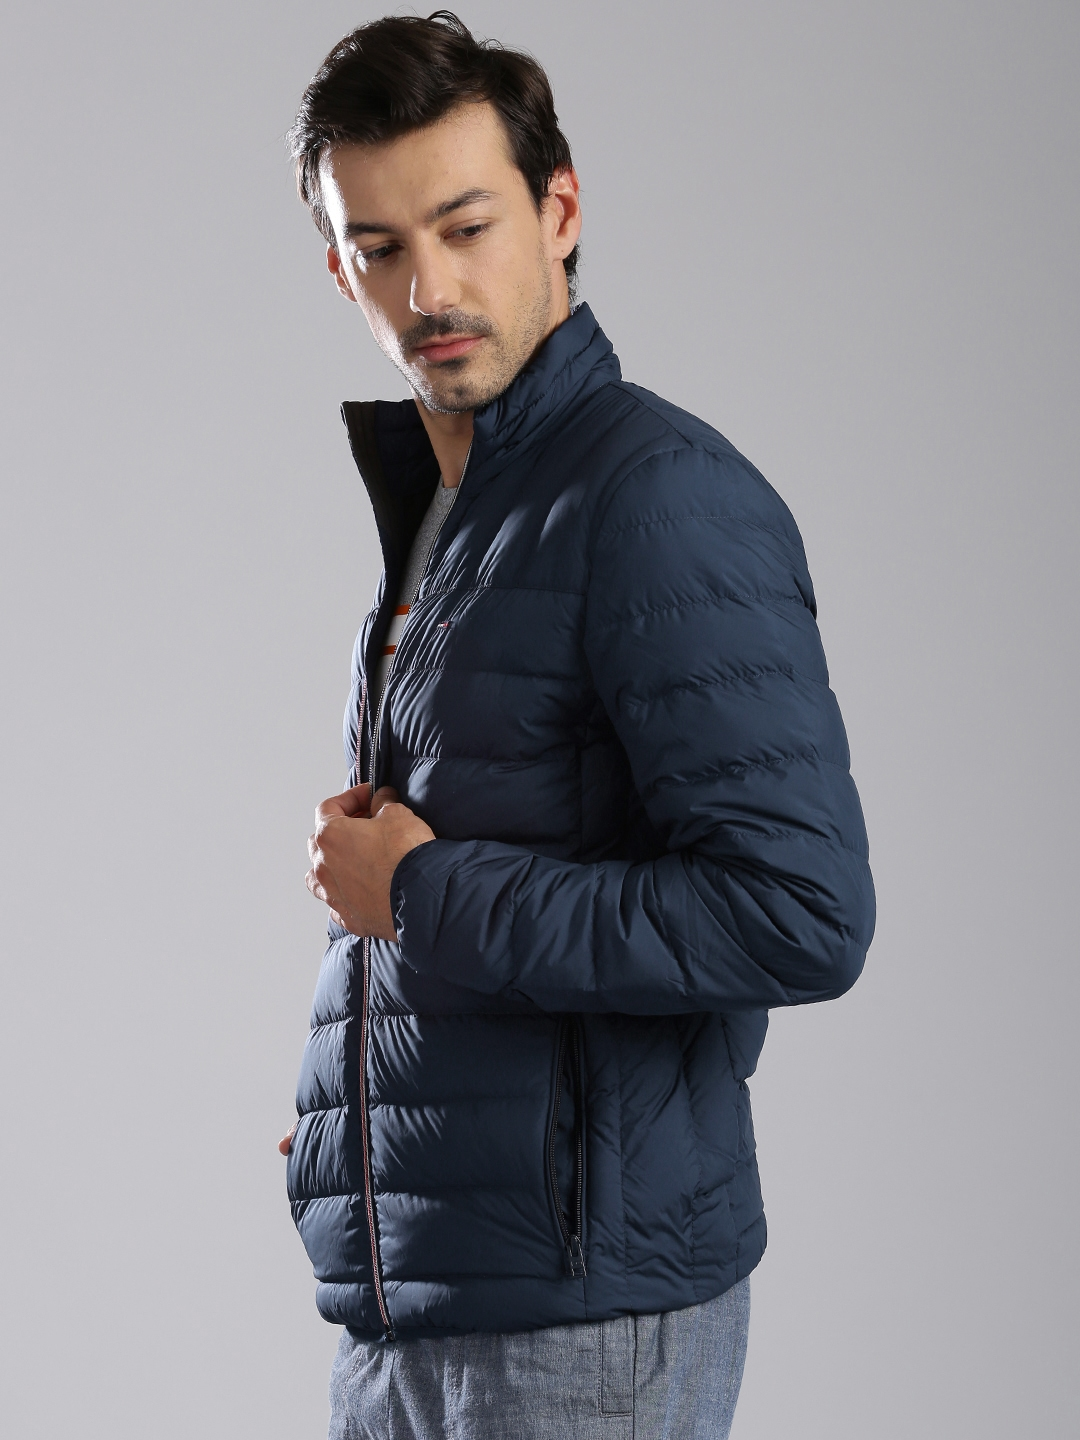 ac856eae63b6 Buy Tommy Hilfiger Navy Quilted Jacket - Jackets for Men 1577174 ...